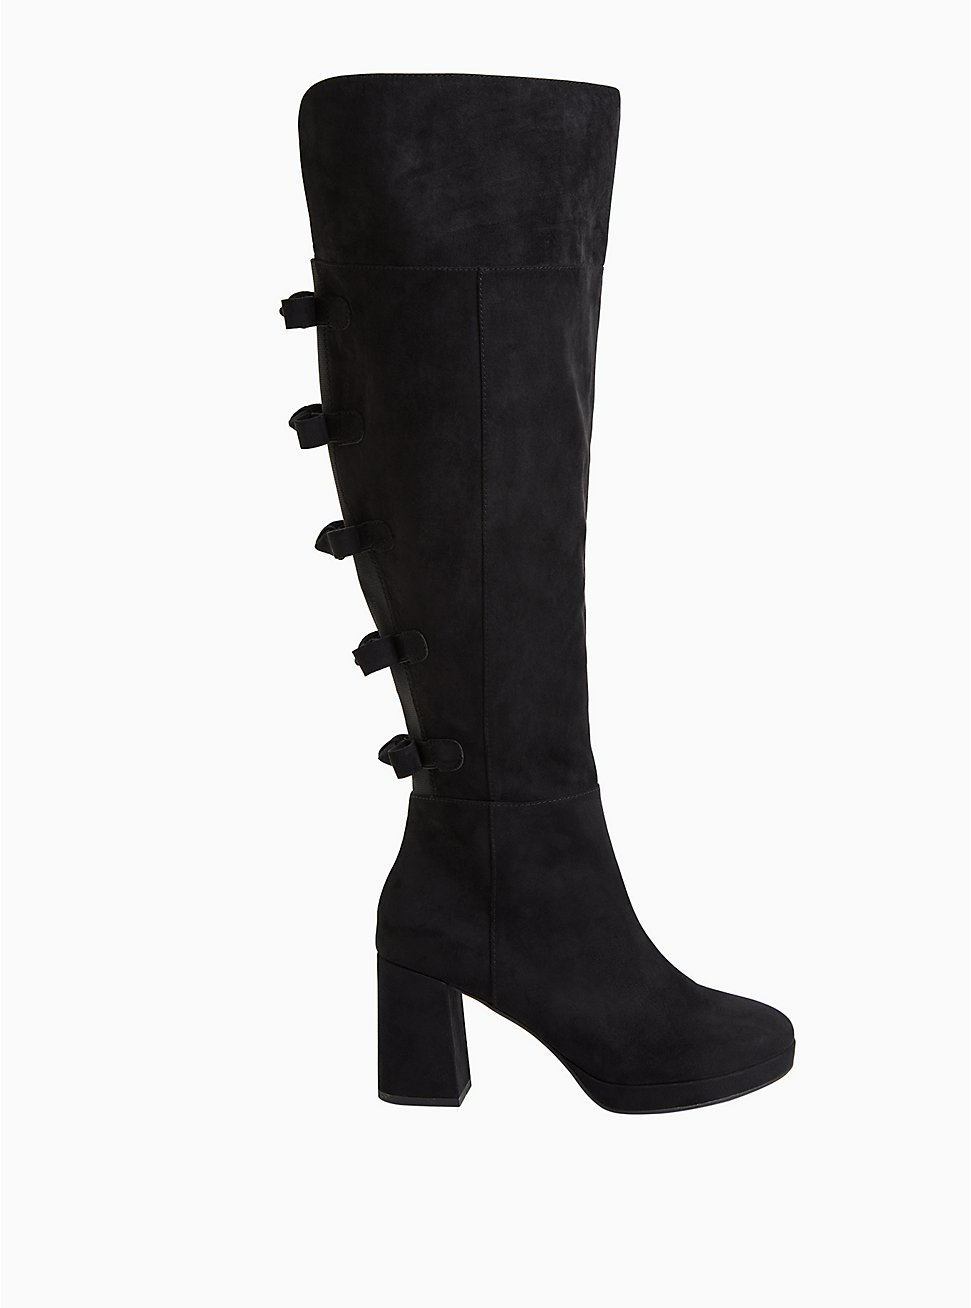 Plus Size Black Faux Suede Bow Over-The-Knee Boot (WW), BLACK, hi-res